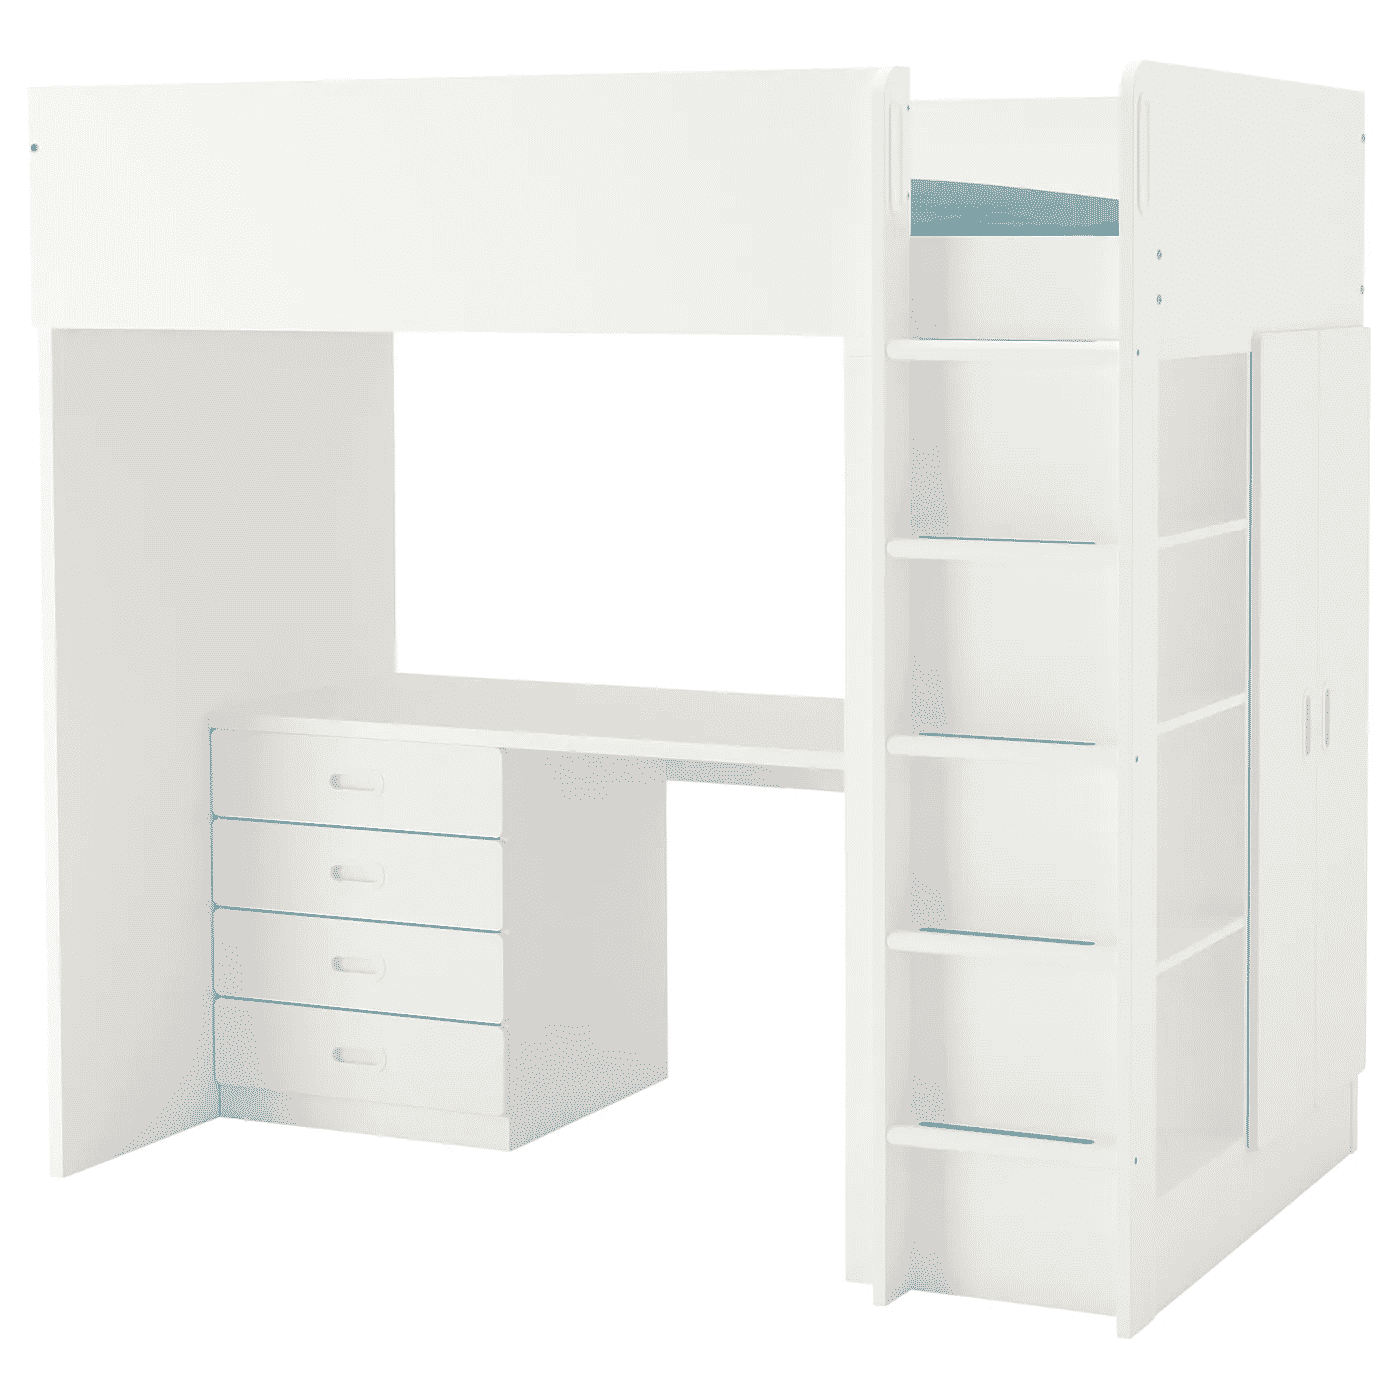 The Stuva Fritids Loft Bed with Four Drawers